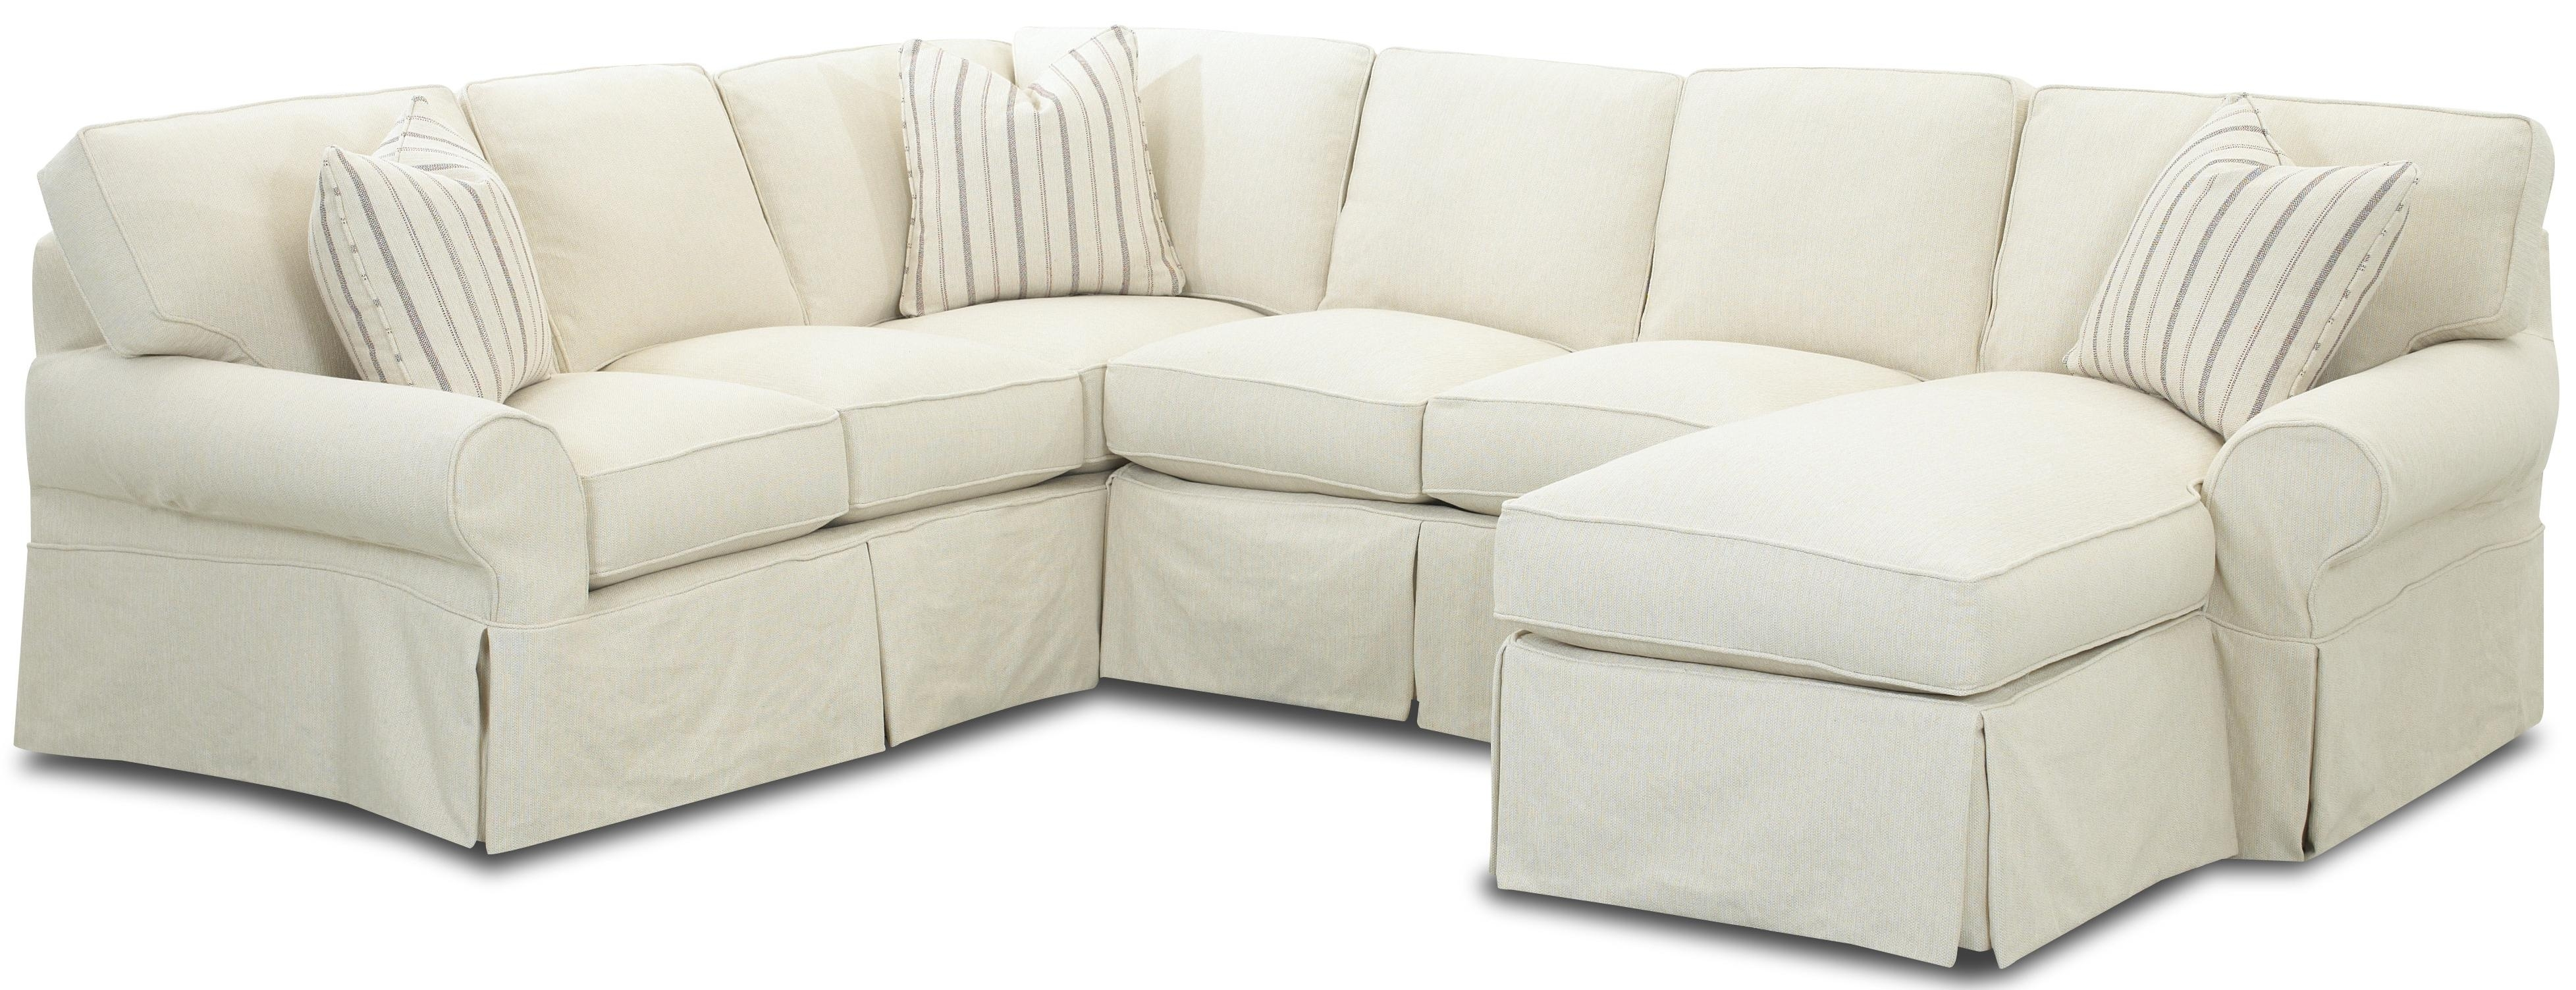 Sectional Sofa Covers | Aifaresidency Pertaining To Sectional Sofas With Covers (View 10 of 10)